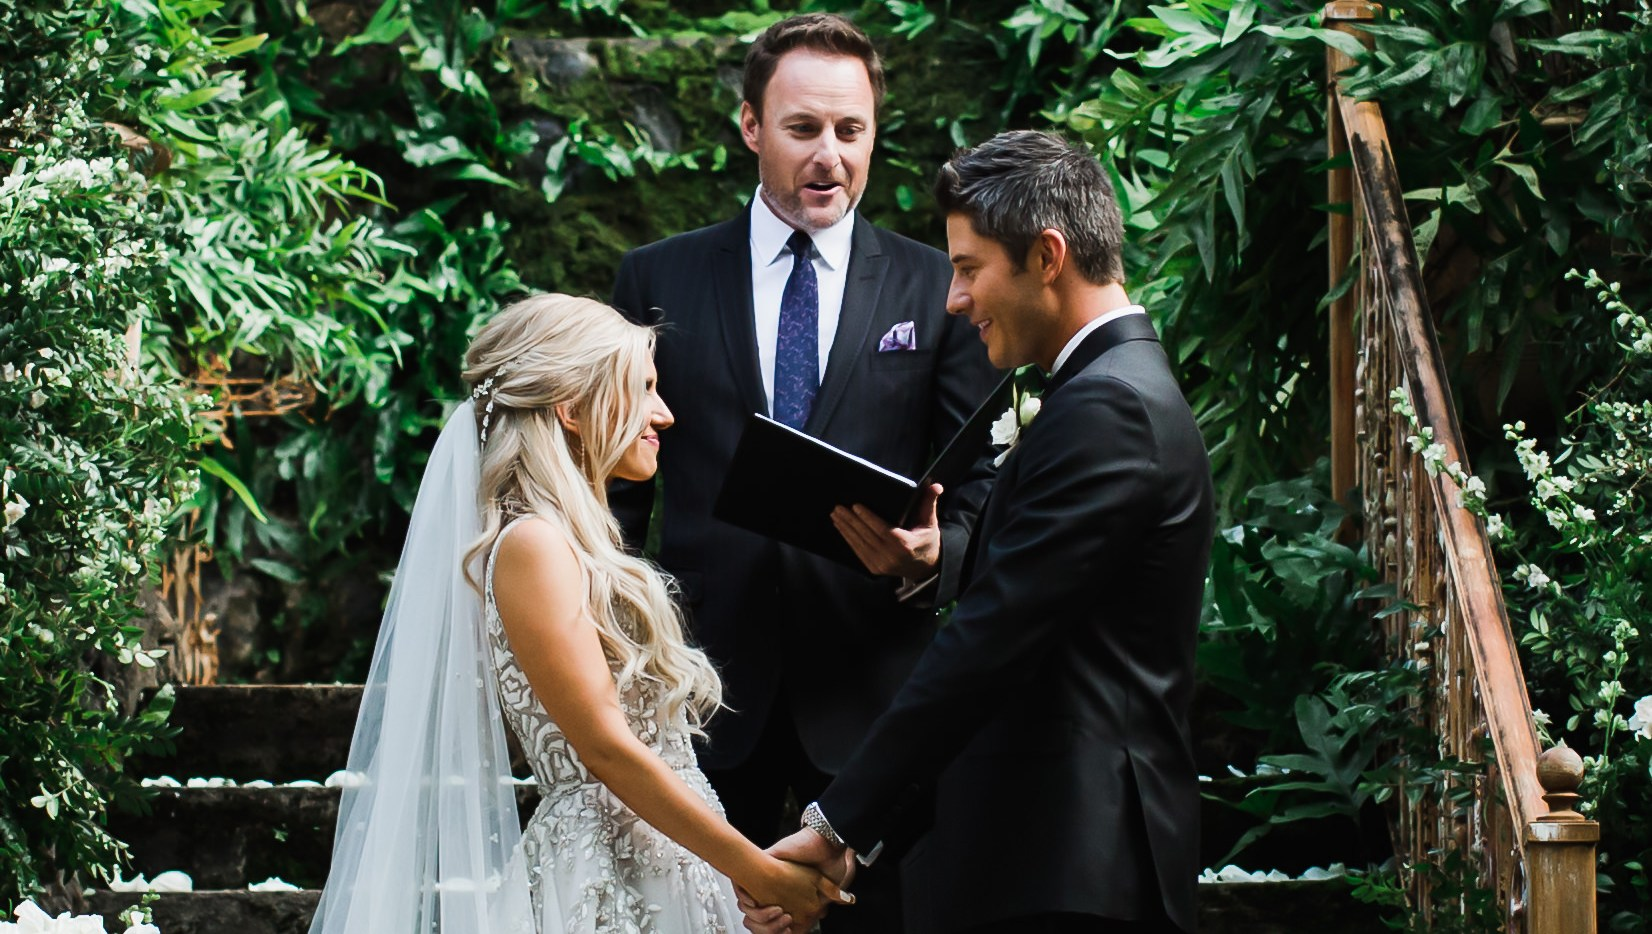 Arie-Luyendyk-Jr.-and-Lauren-Burnham's-Wedding